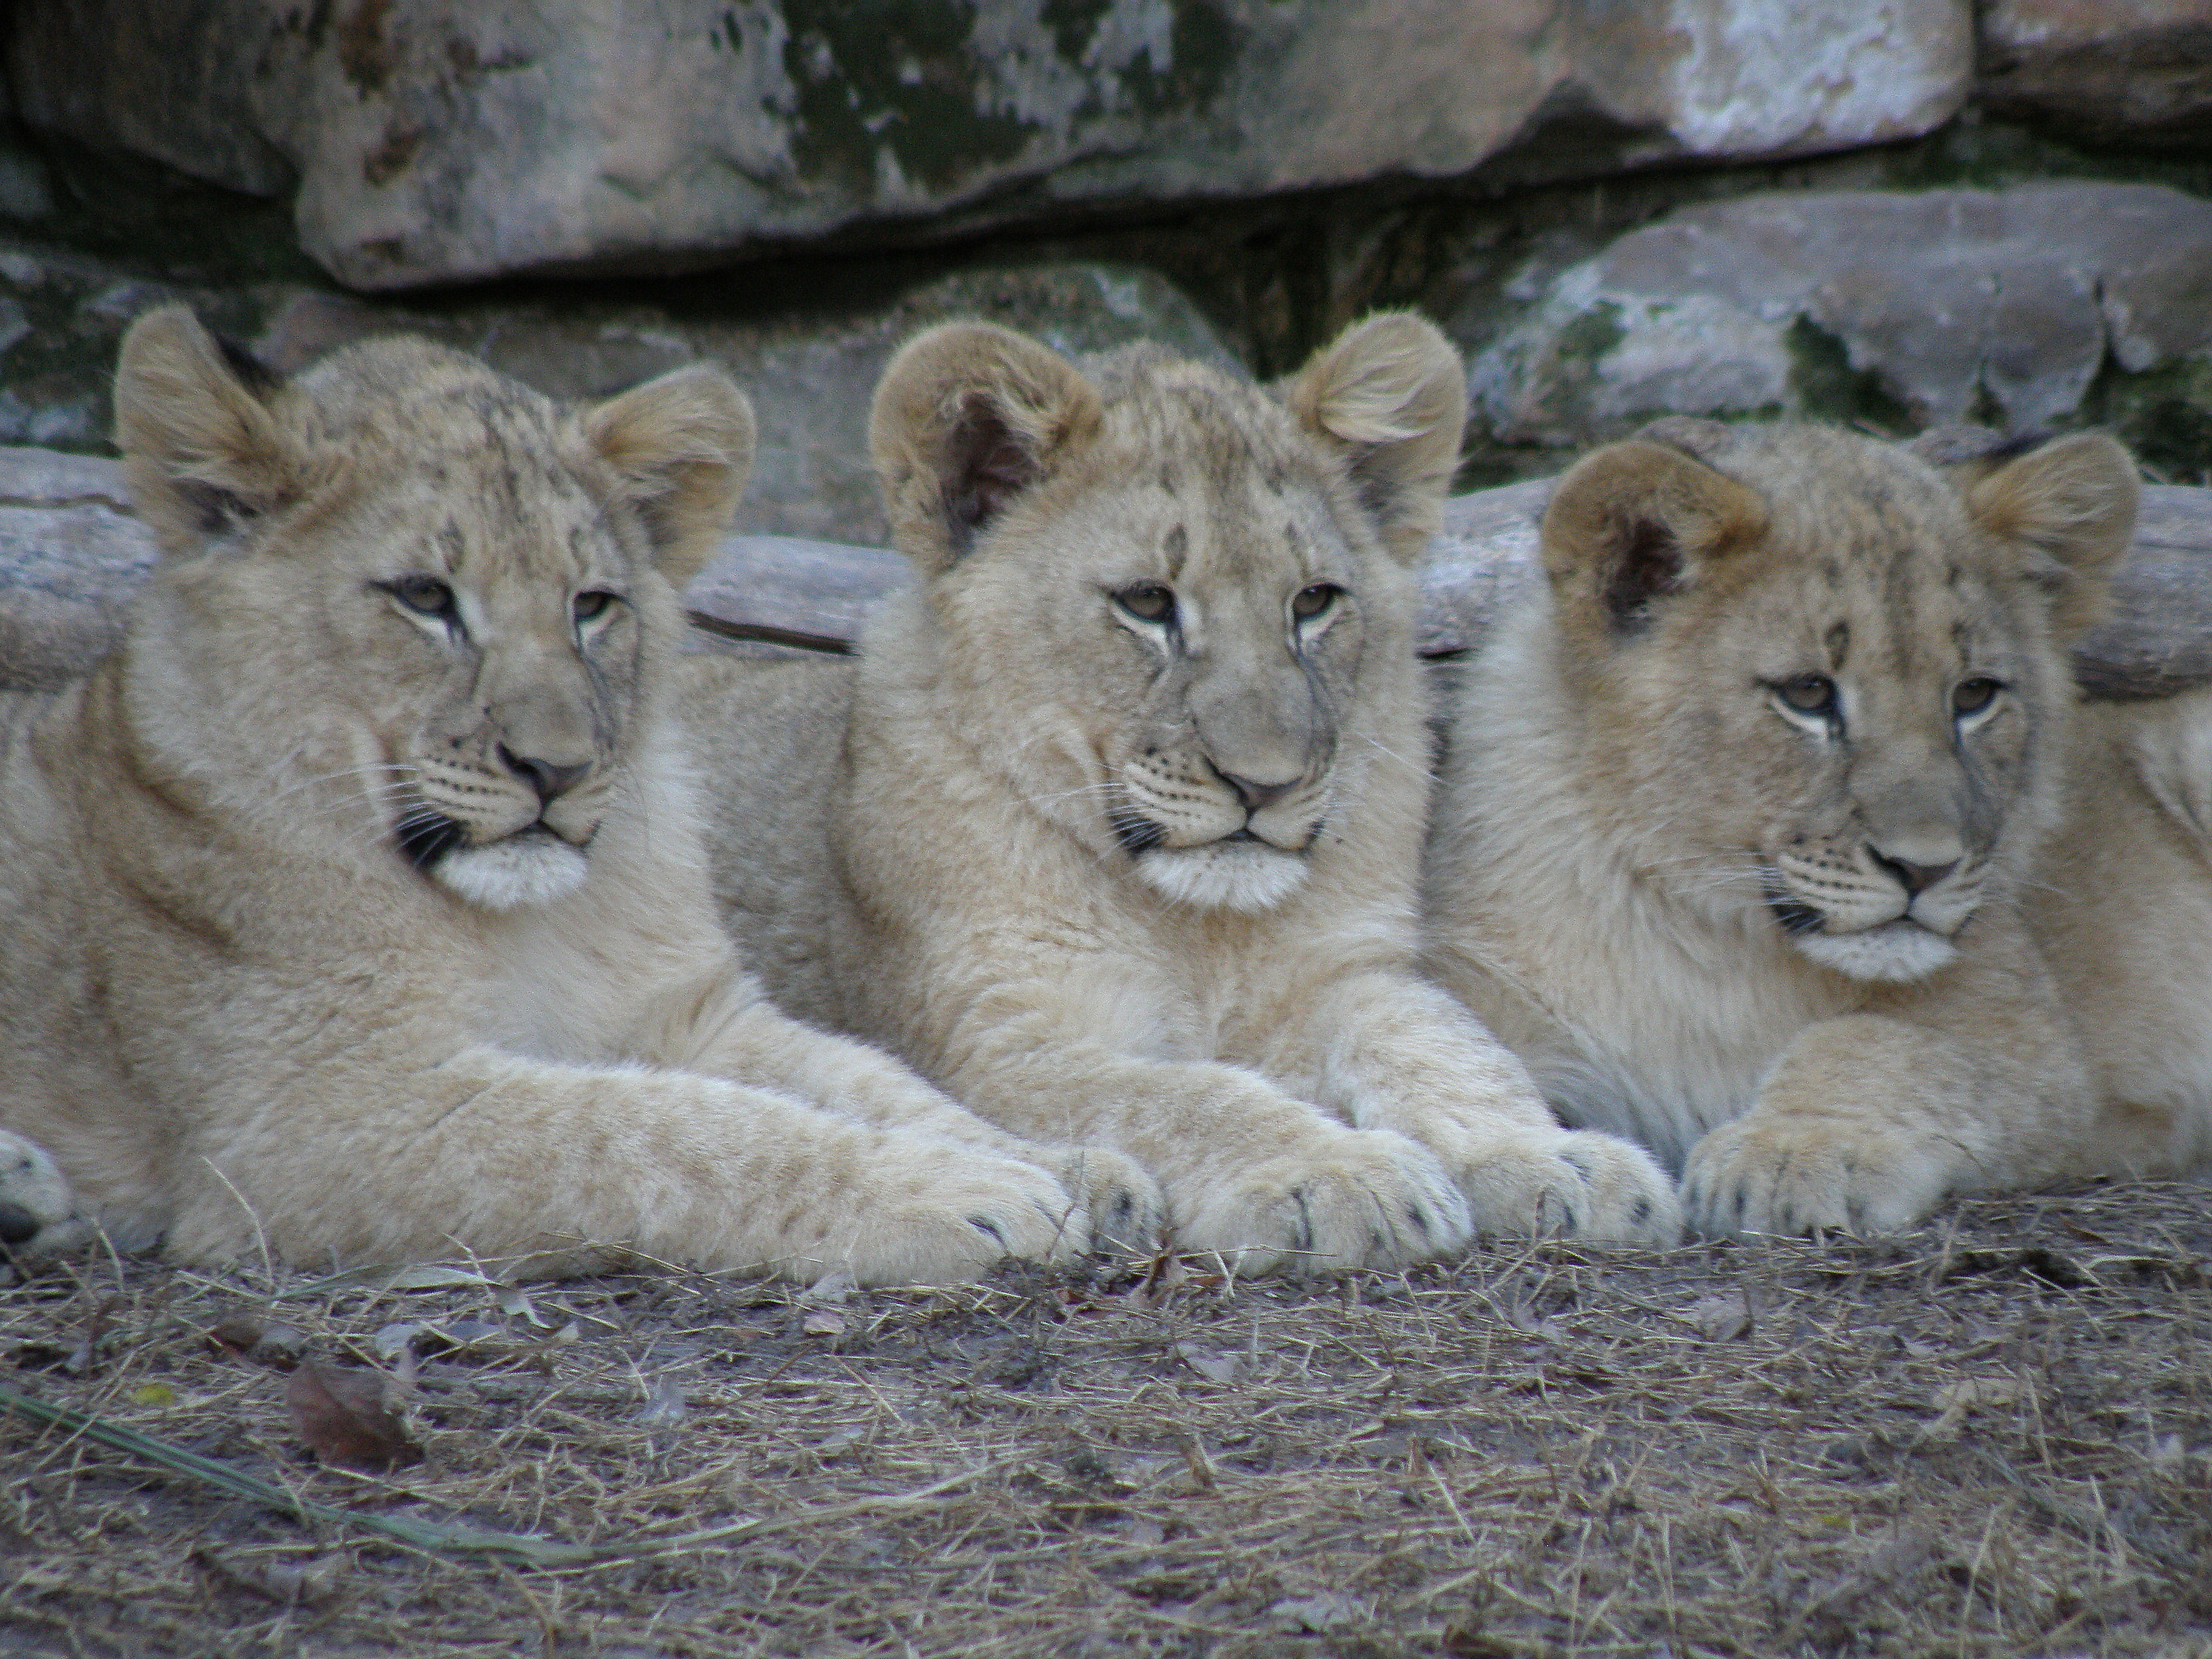 Fort Worth Zoo - Zoo in Fort Worth - Thousand Wonders